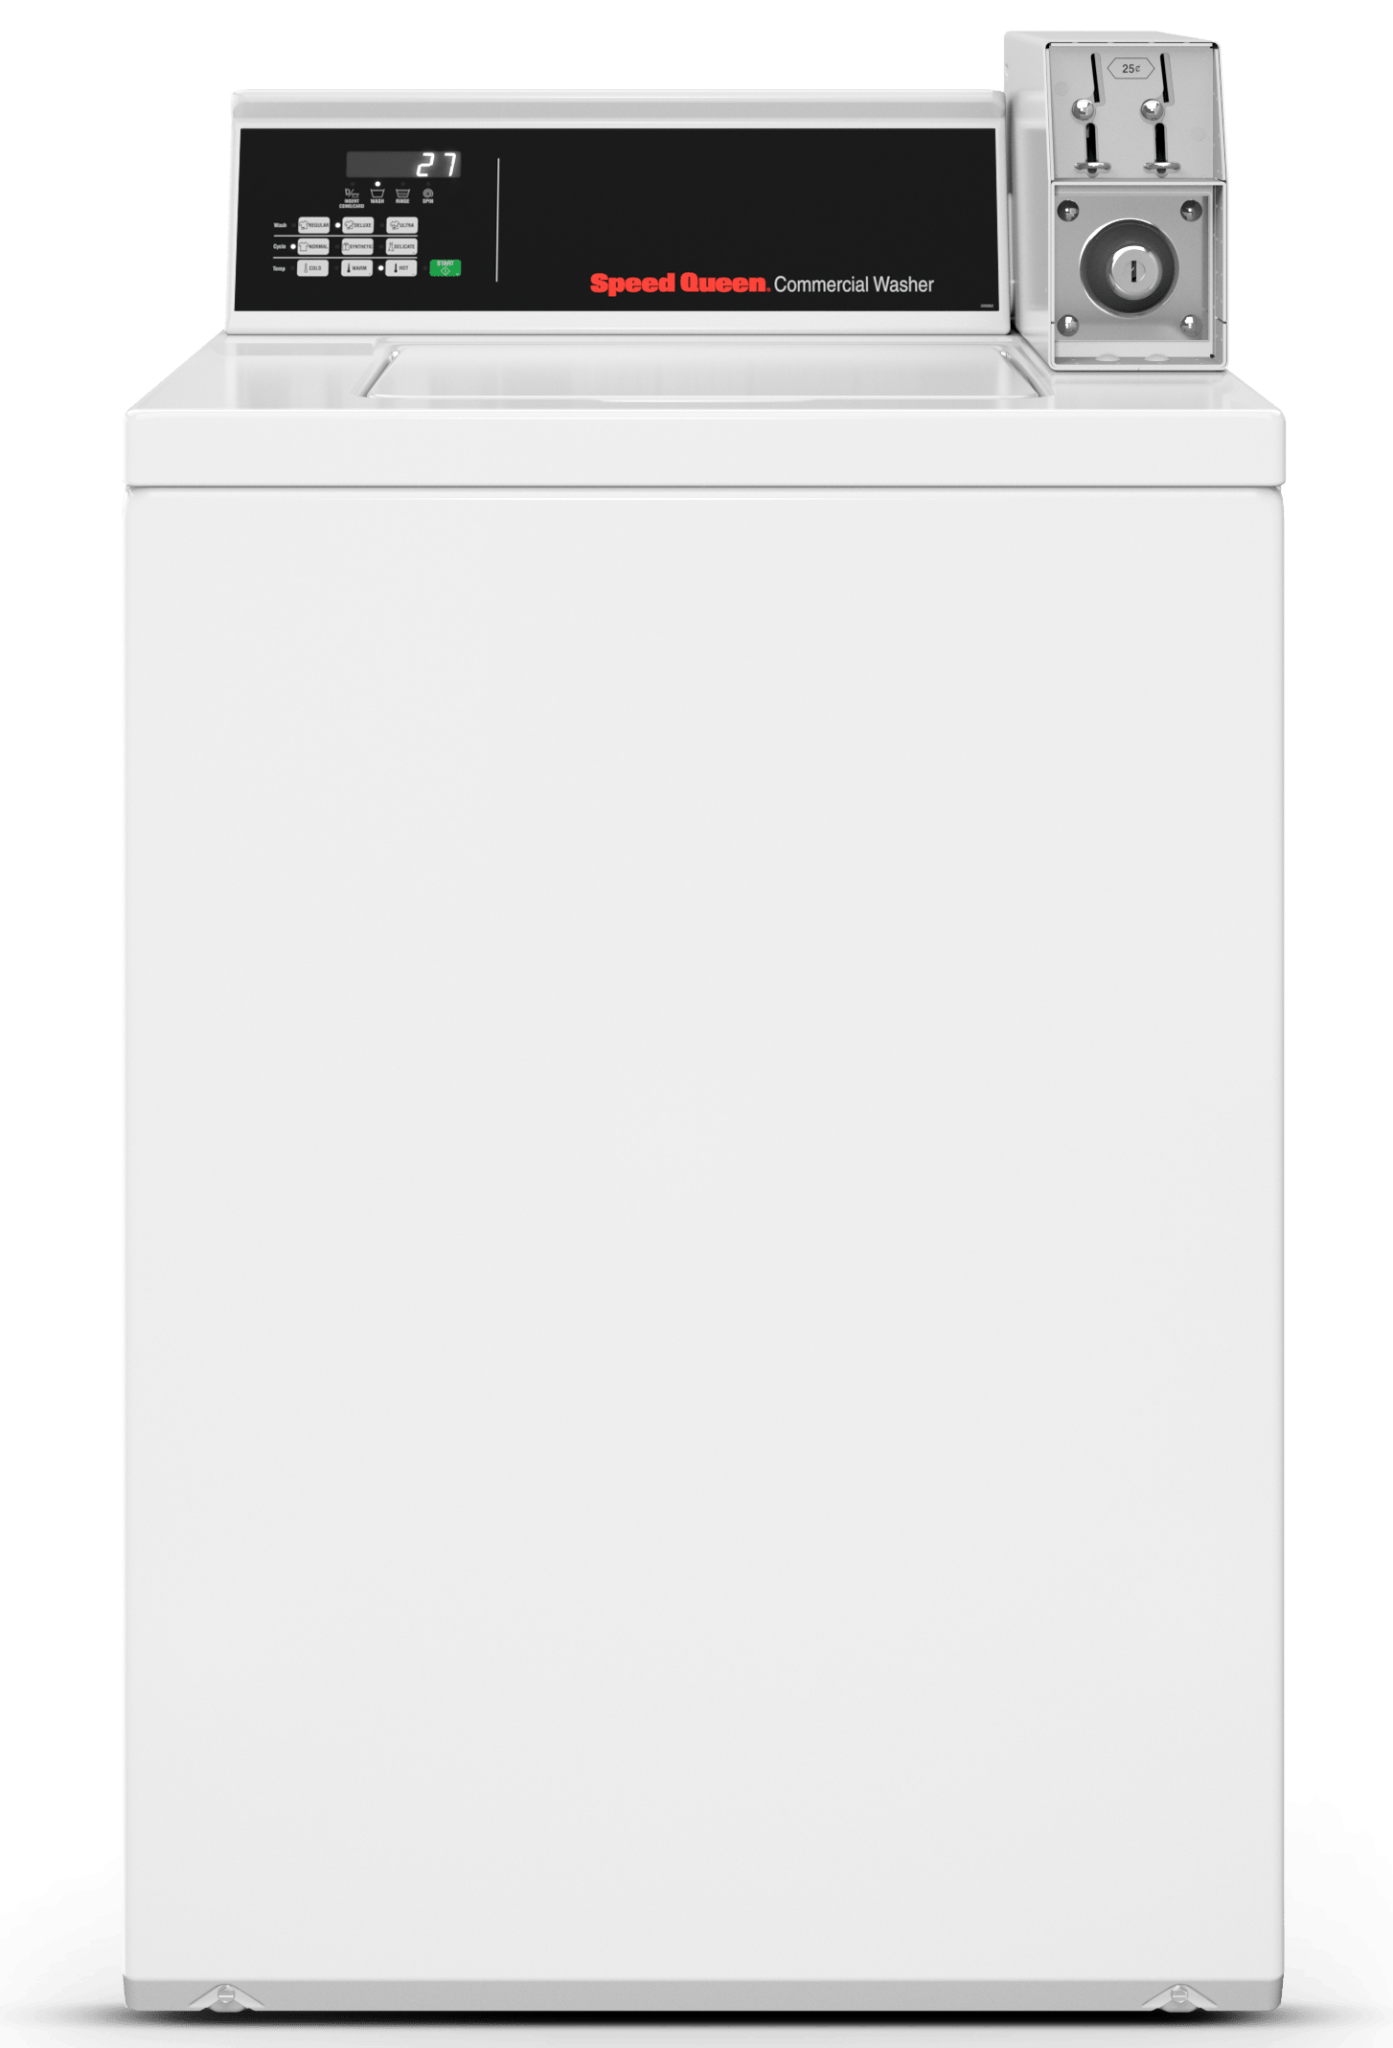 Speed Queen Top Load Washer Used for Multi-Housing Laundry Rooms